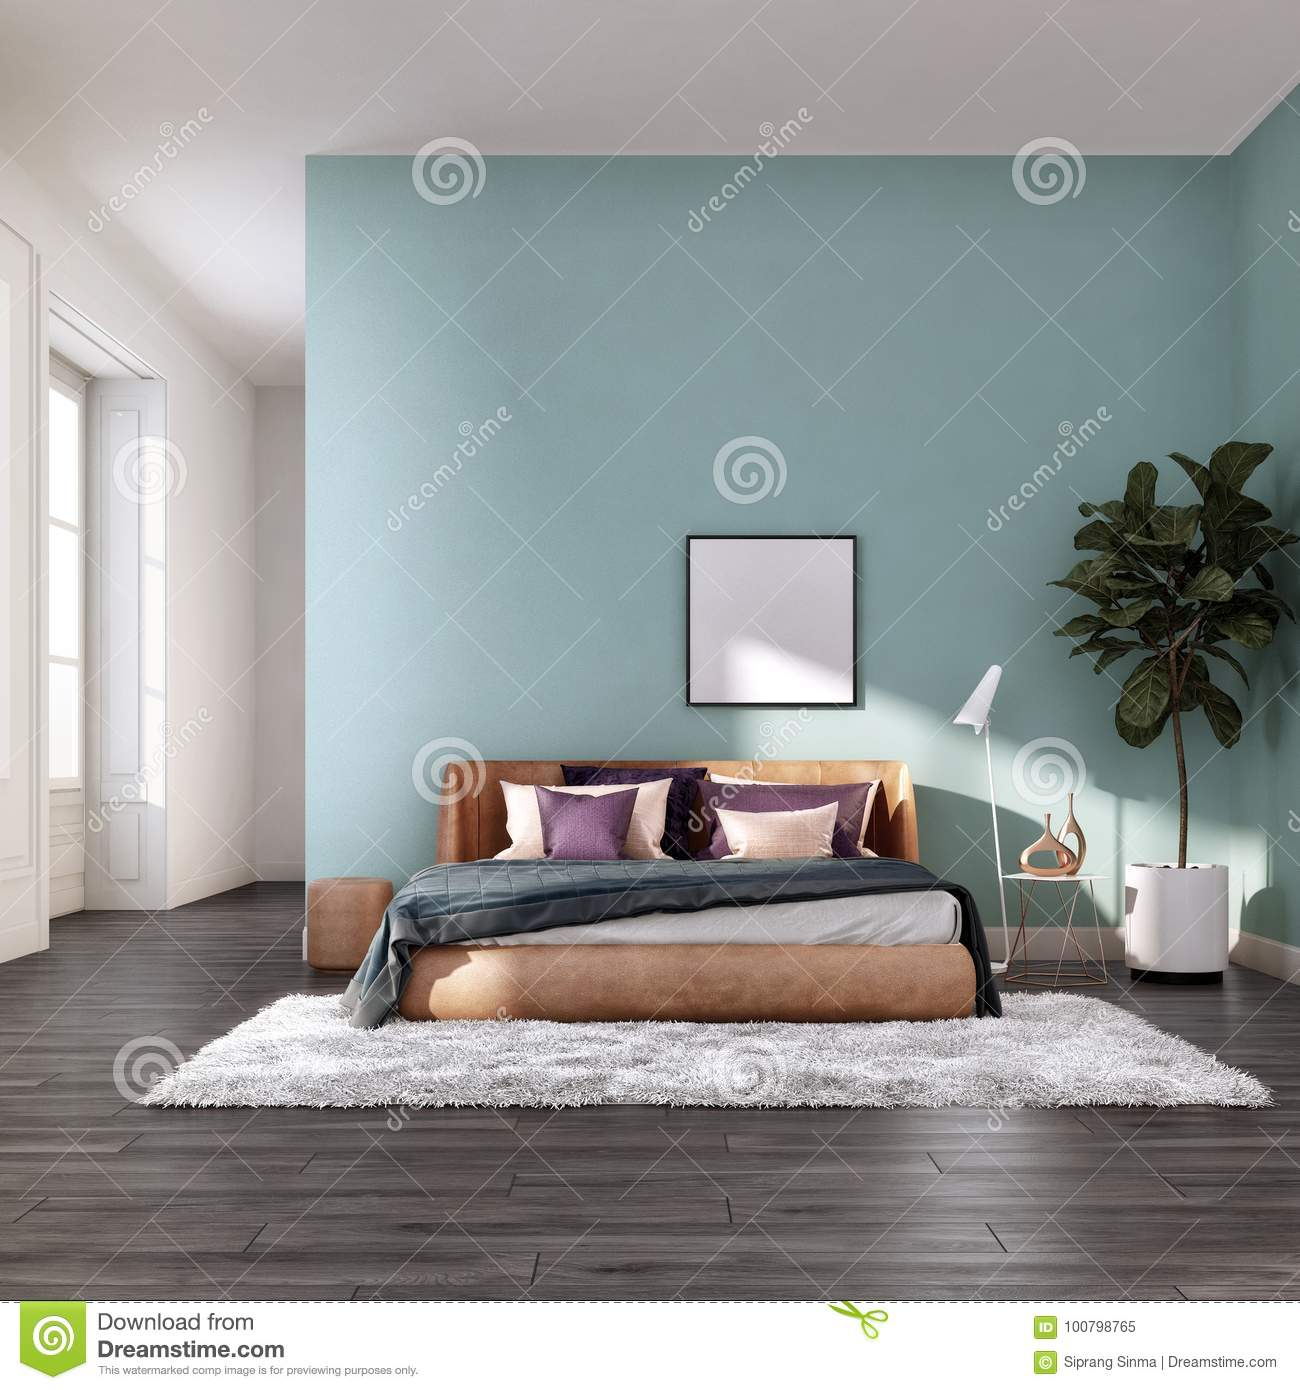 Comfortable Bed Room With Green Pastel Wall Colord Rendering